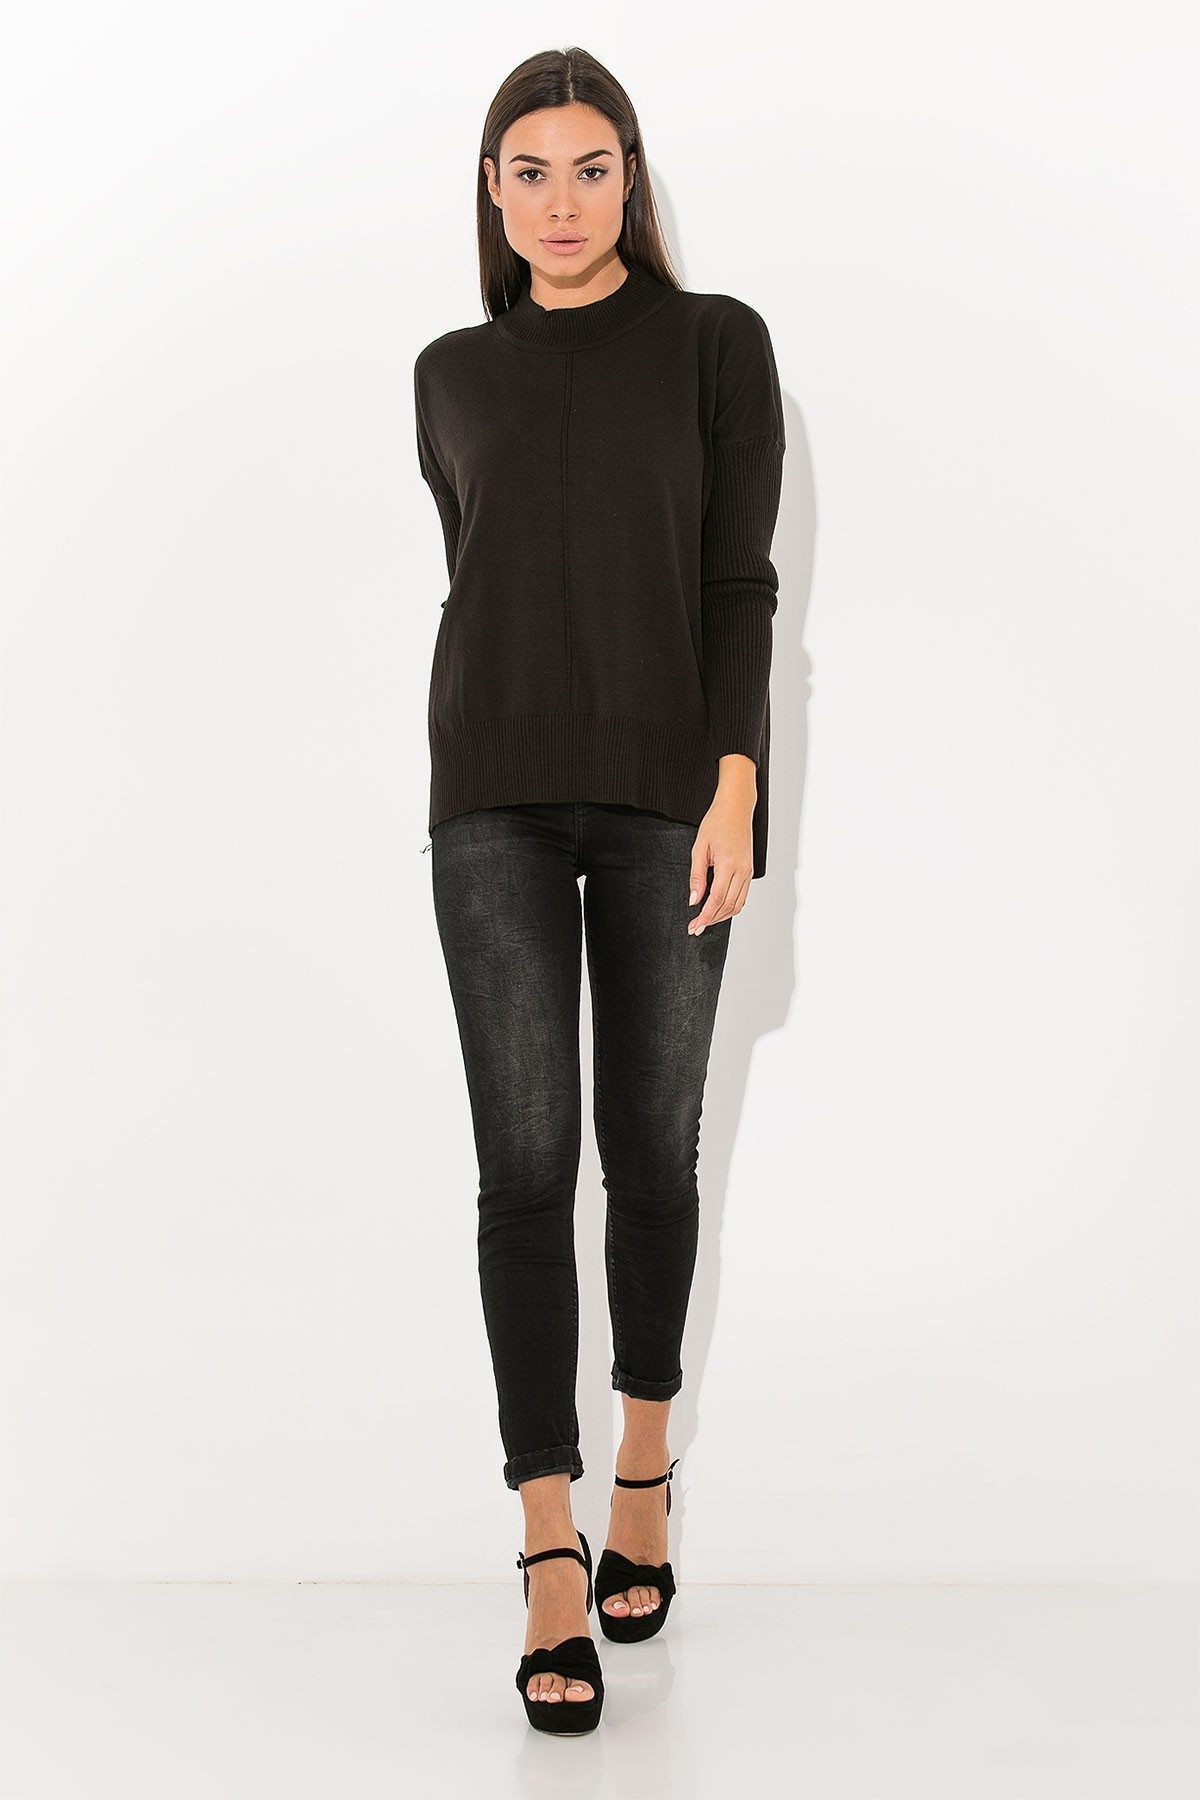 BLACK BASIC KNIT TOP